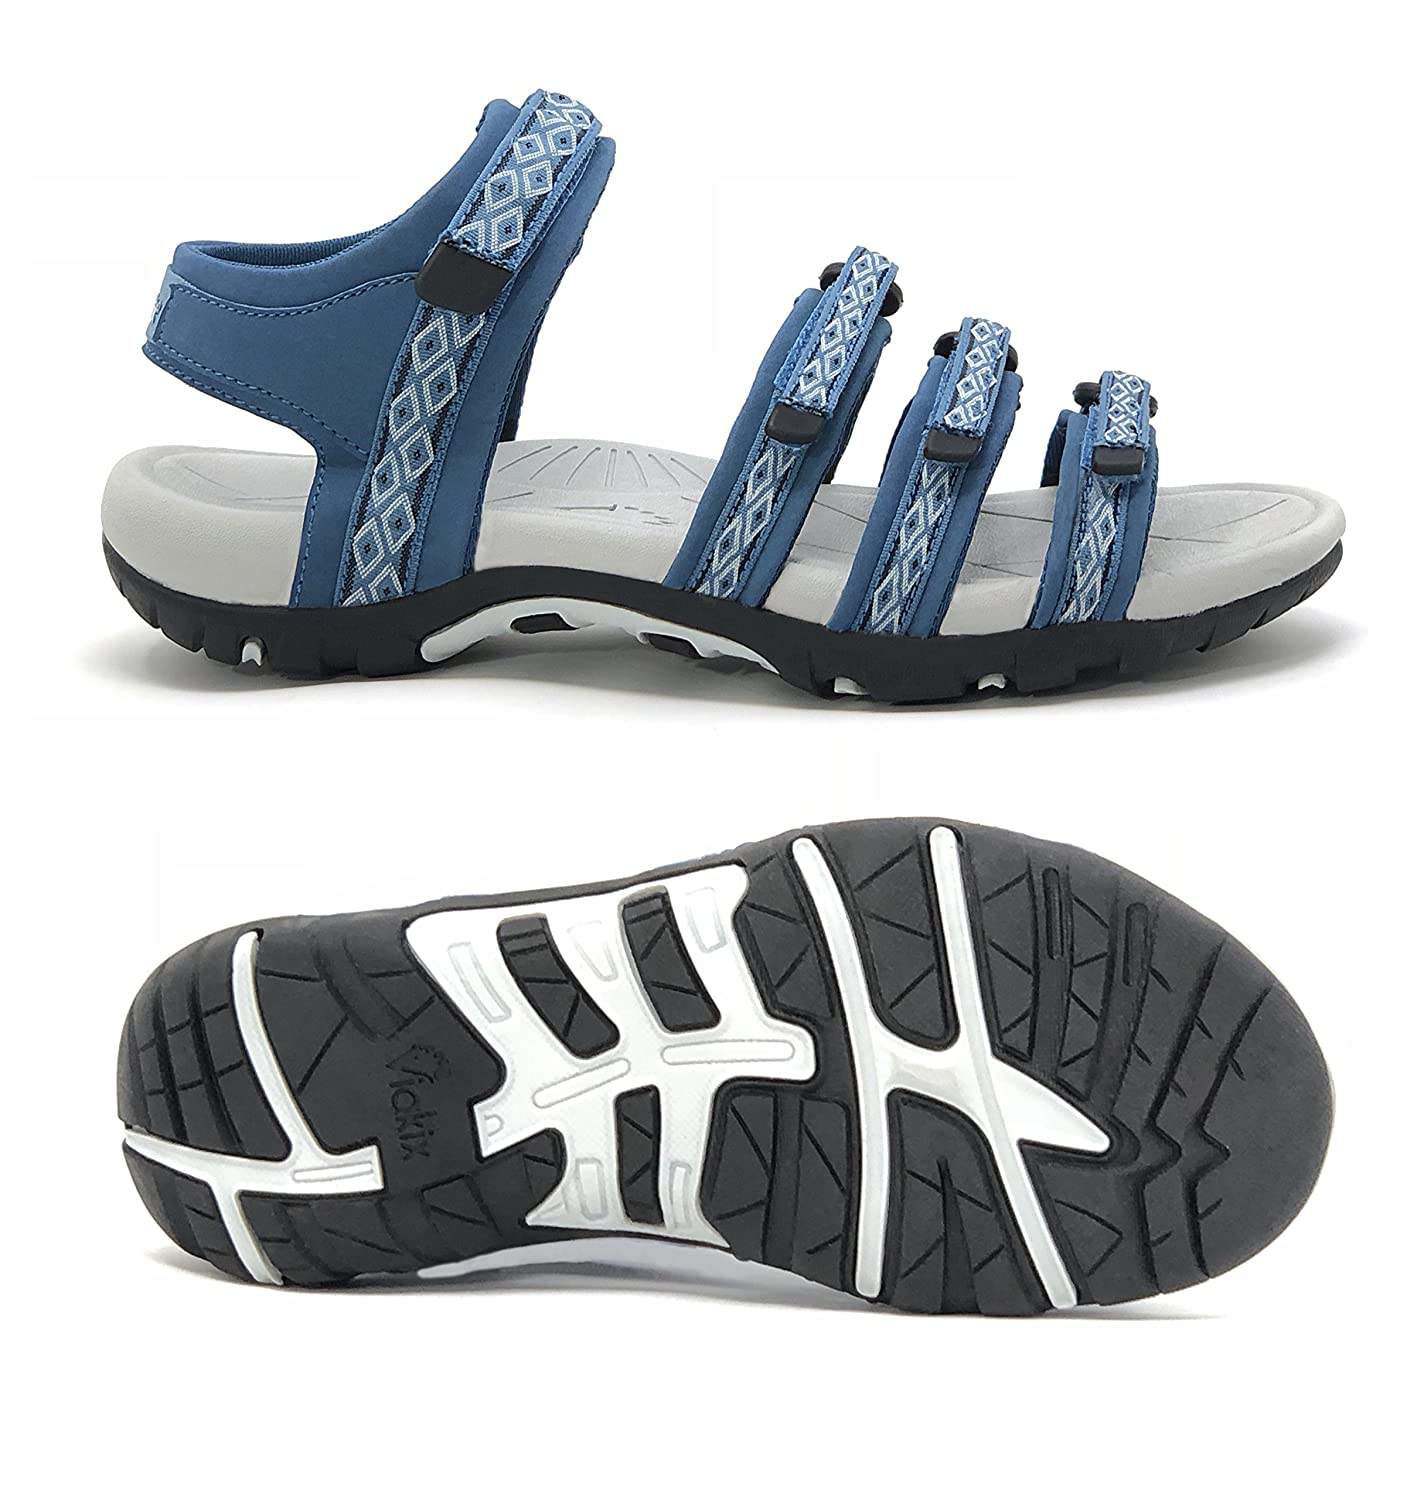 343a989f566f Viakix Hiking Sandals for Women - Comfortable Athletic Stylish Sandal for  Walking